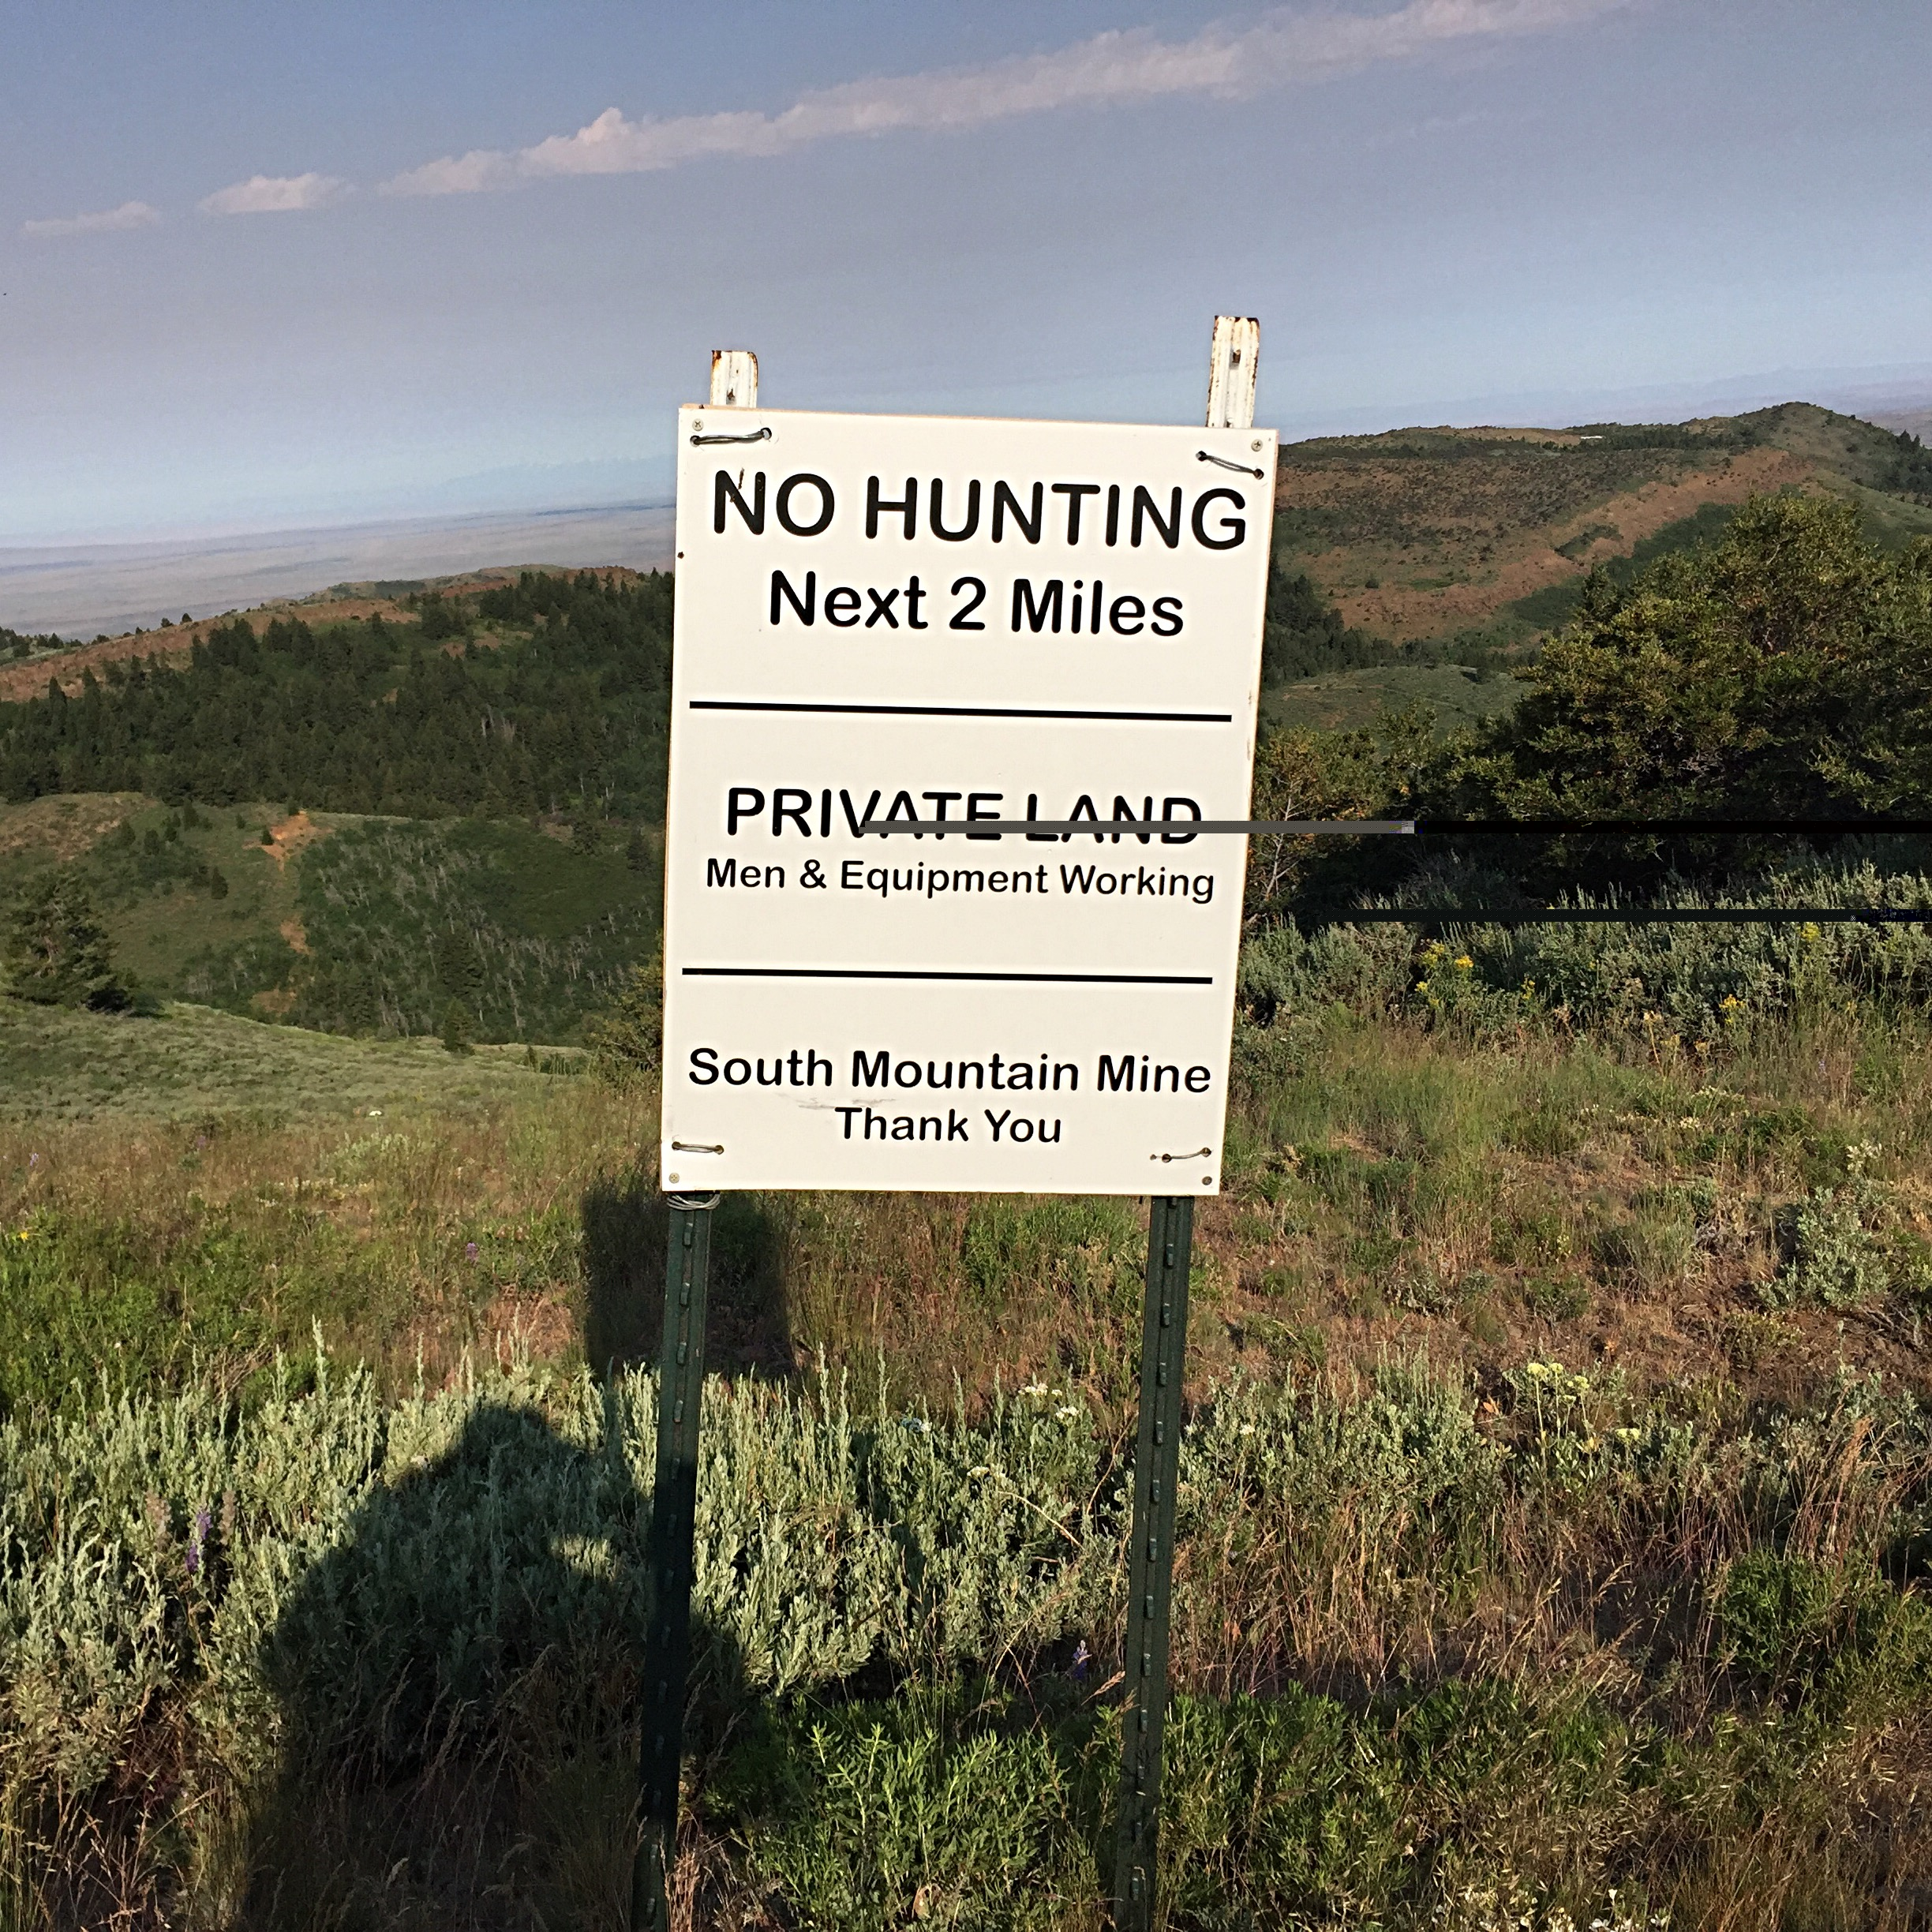 Please help preserve public access onmthe South Mountain Road by staying on the road and obeying the signs' directions. Stay on the road and leave cabins an equipment alone.